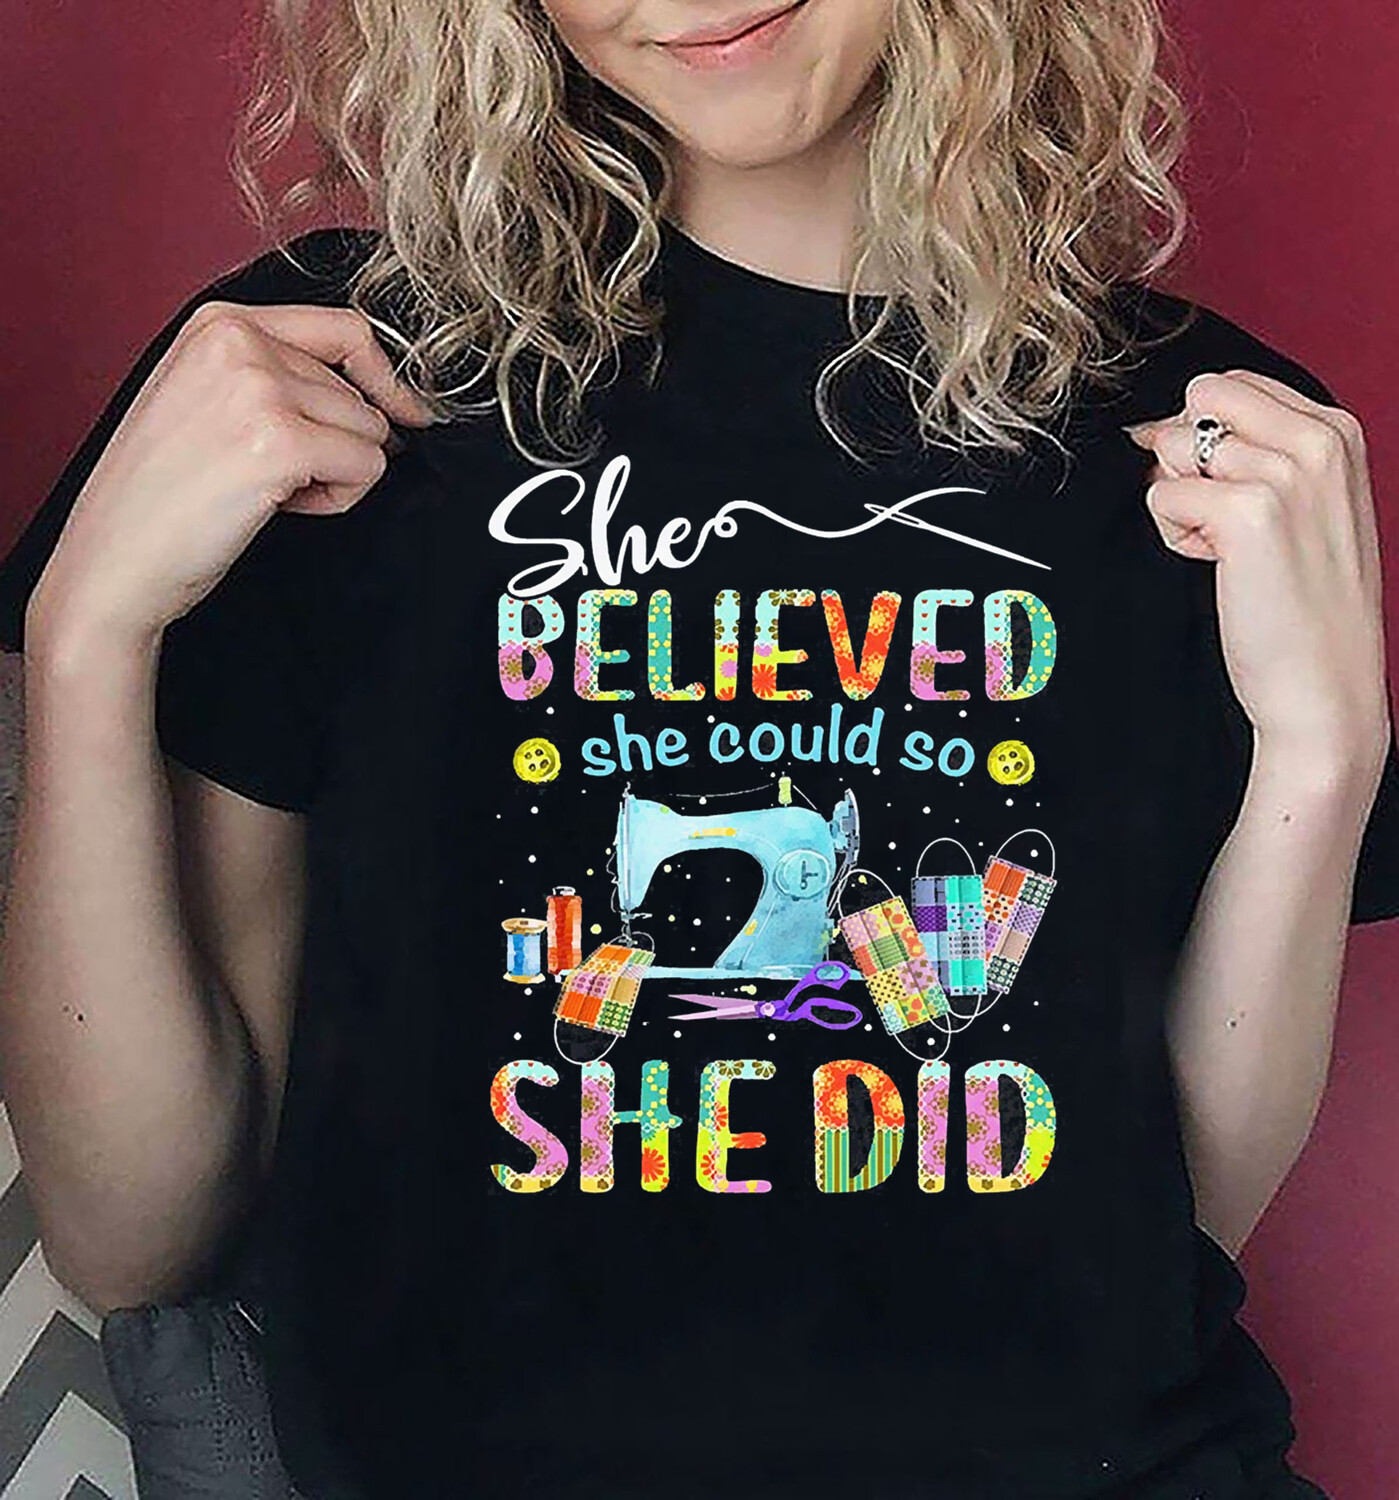 She believed she could so she did,Sewing is not a hobby it's a 2021 survival skill,Sewing survived,funny quilter 2021 quarantined T Shirt Sweatshirt Hoodie Unisex shirt for women girl all size